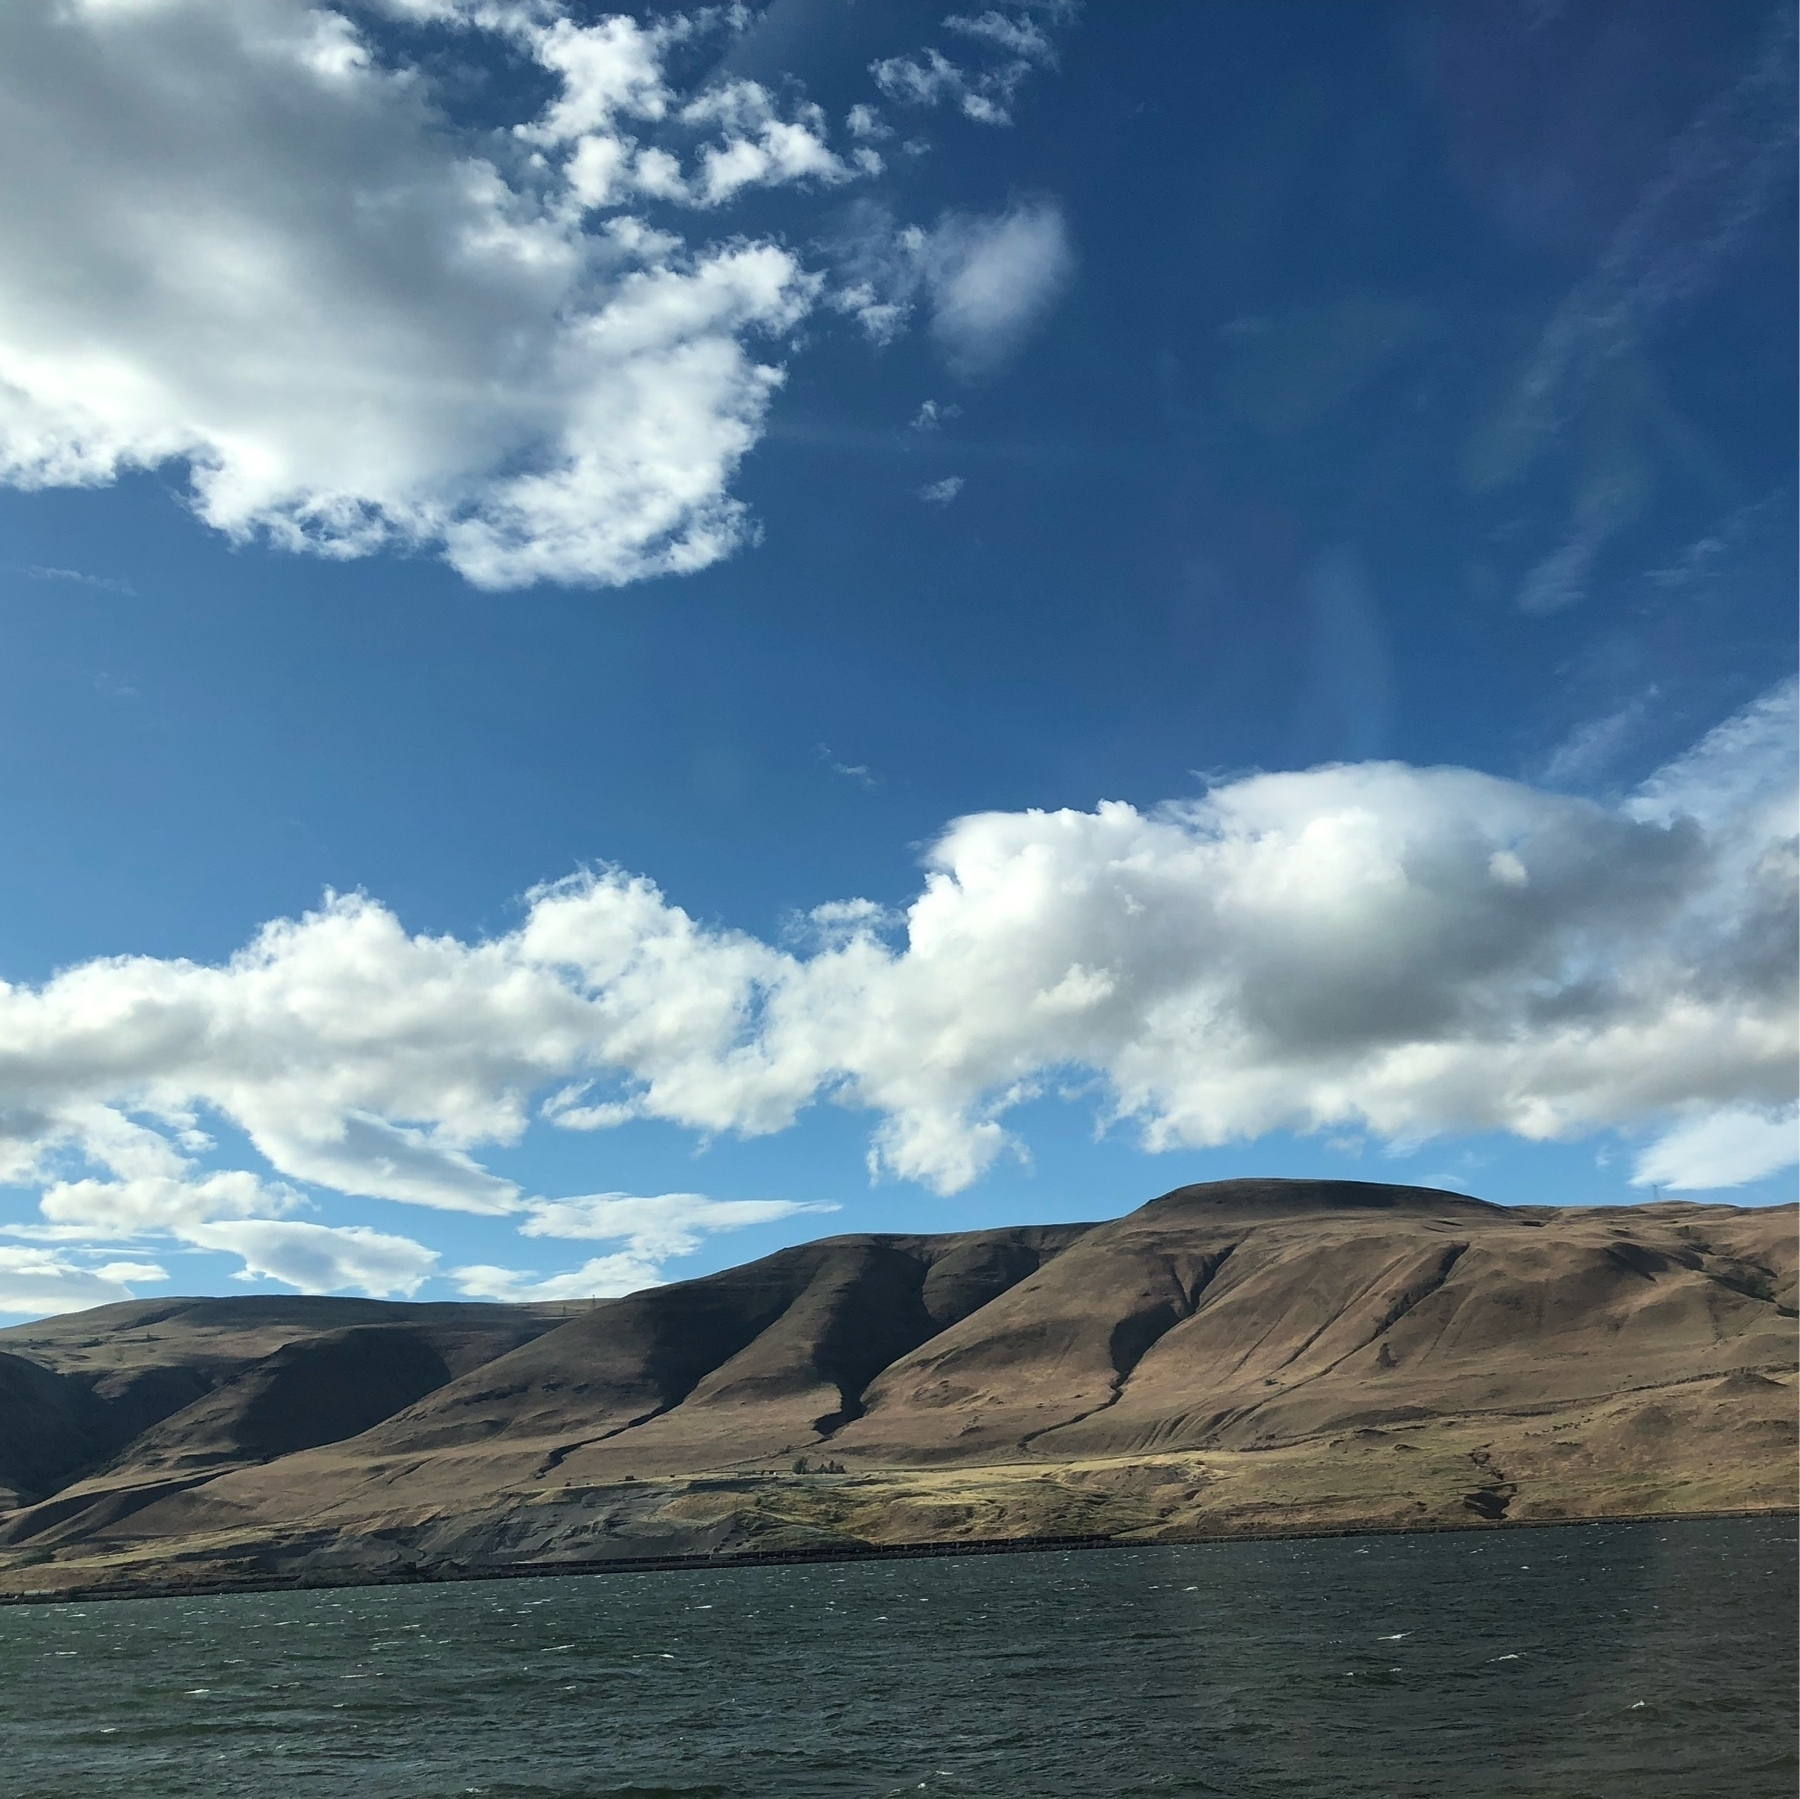 Smooth brown hills roll alongside the slate colored columbia river beneath a cloudy blue sky.